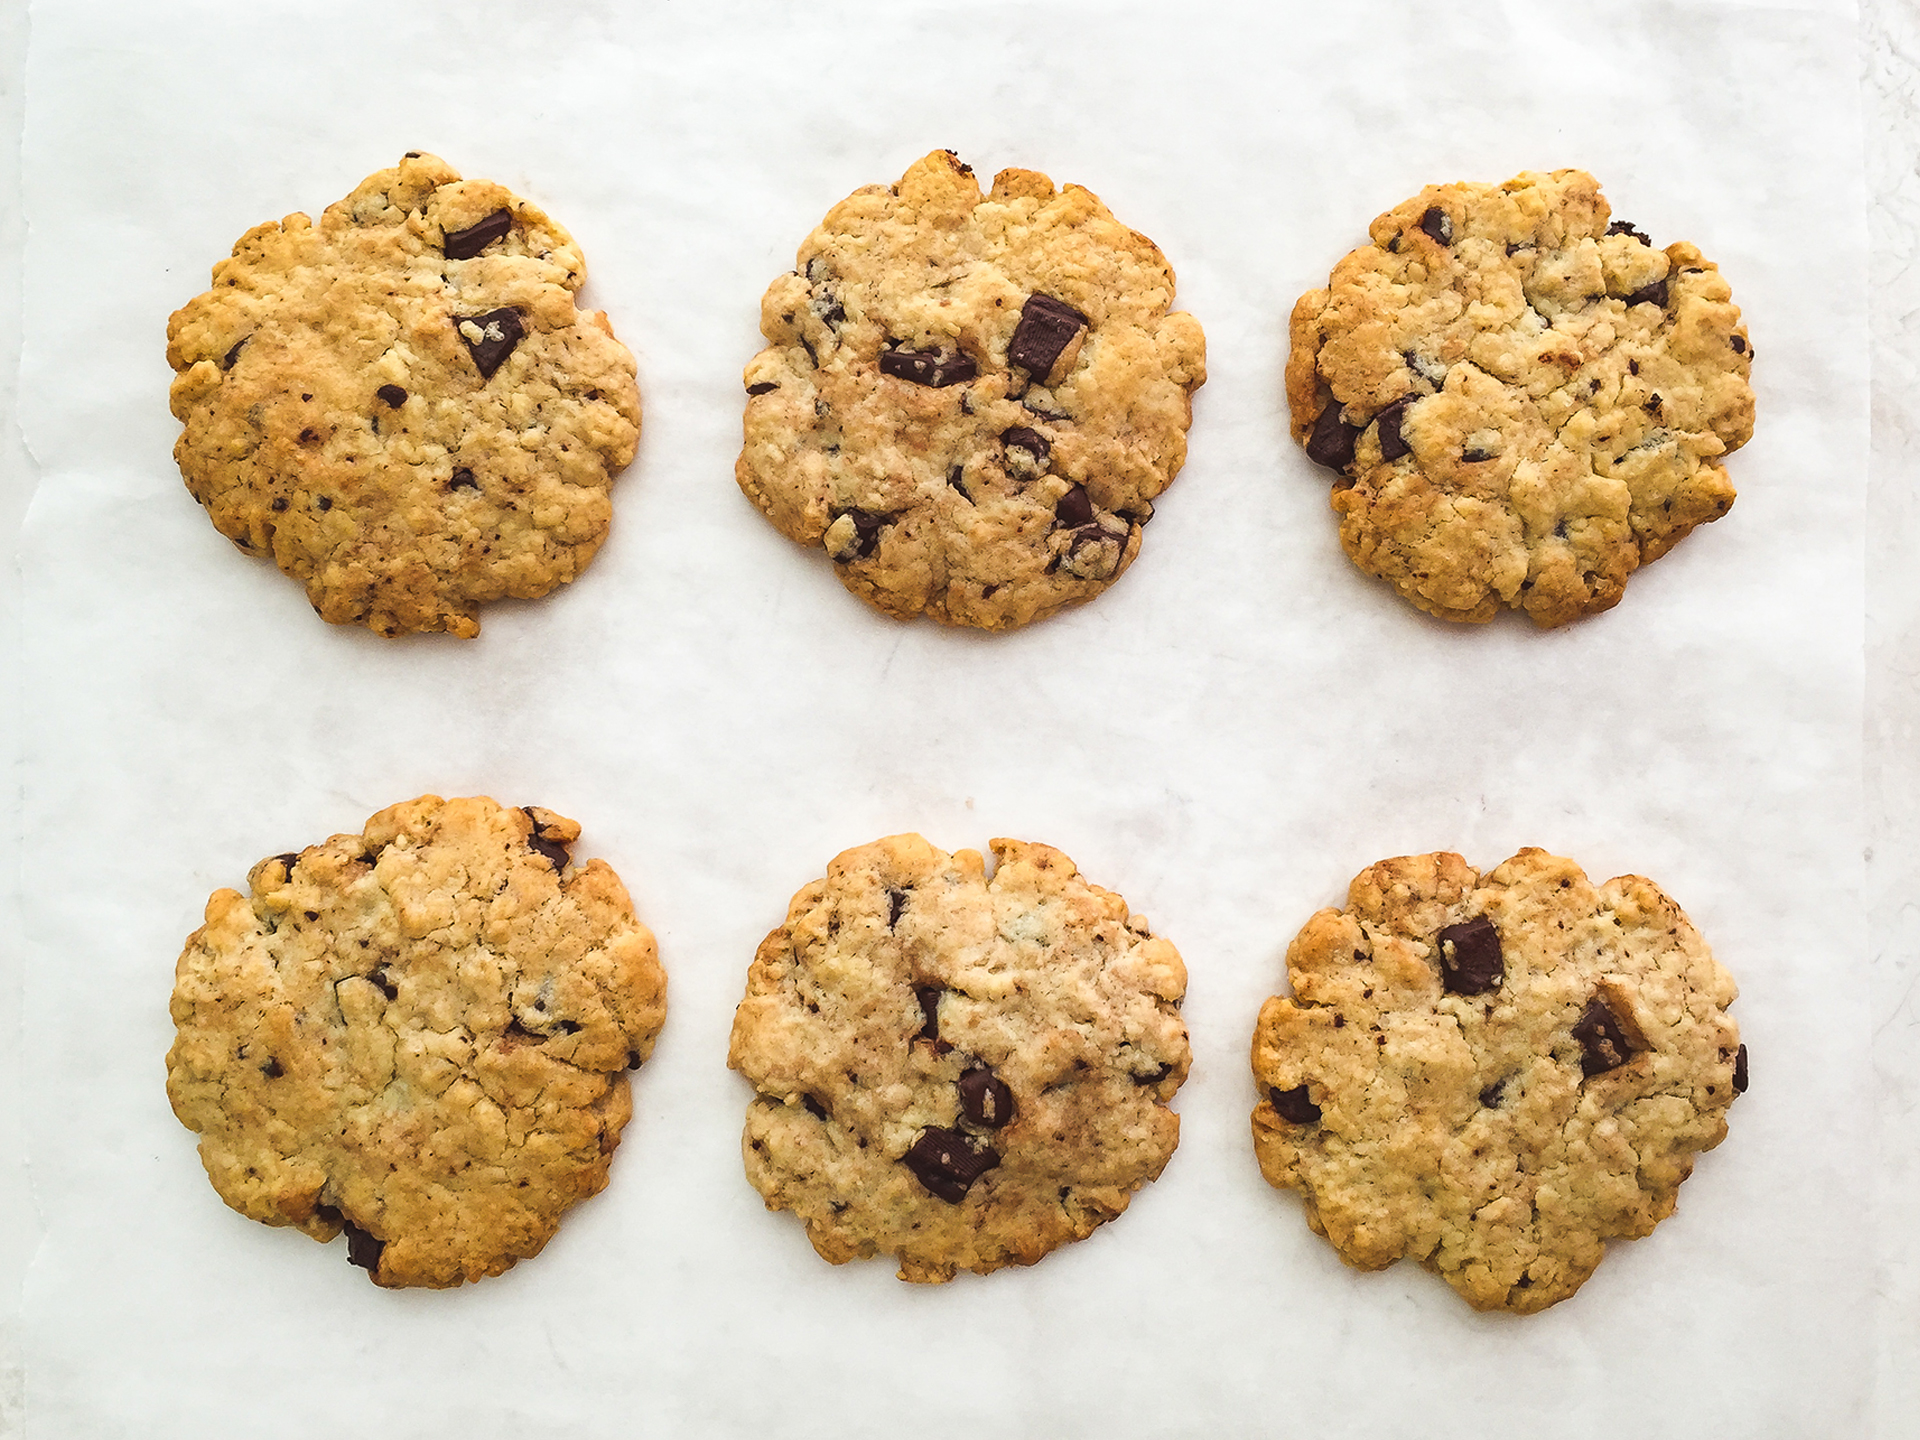 Step 4.1 of Gluten Free Oat Flour Chocolate Chip Cookies